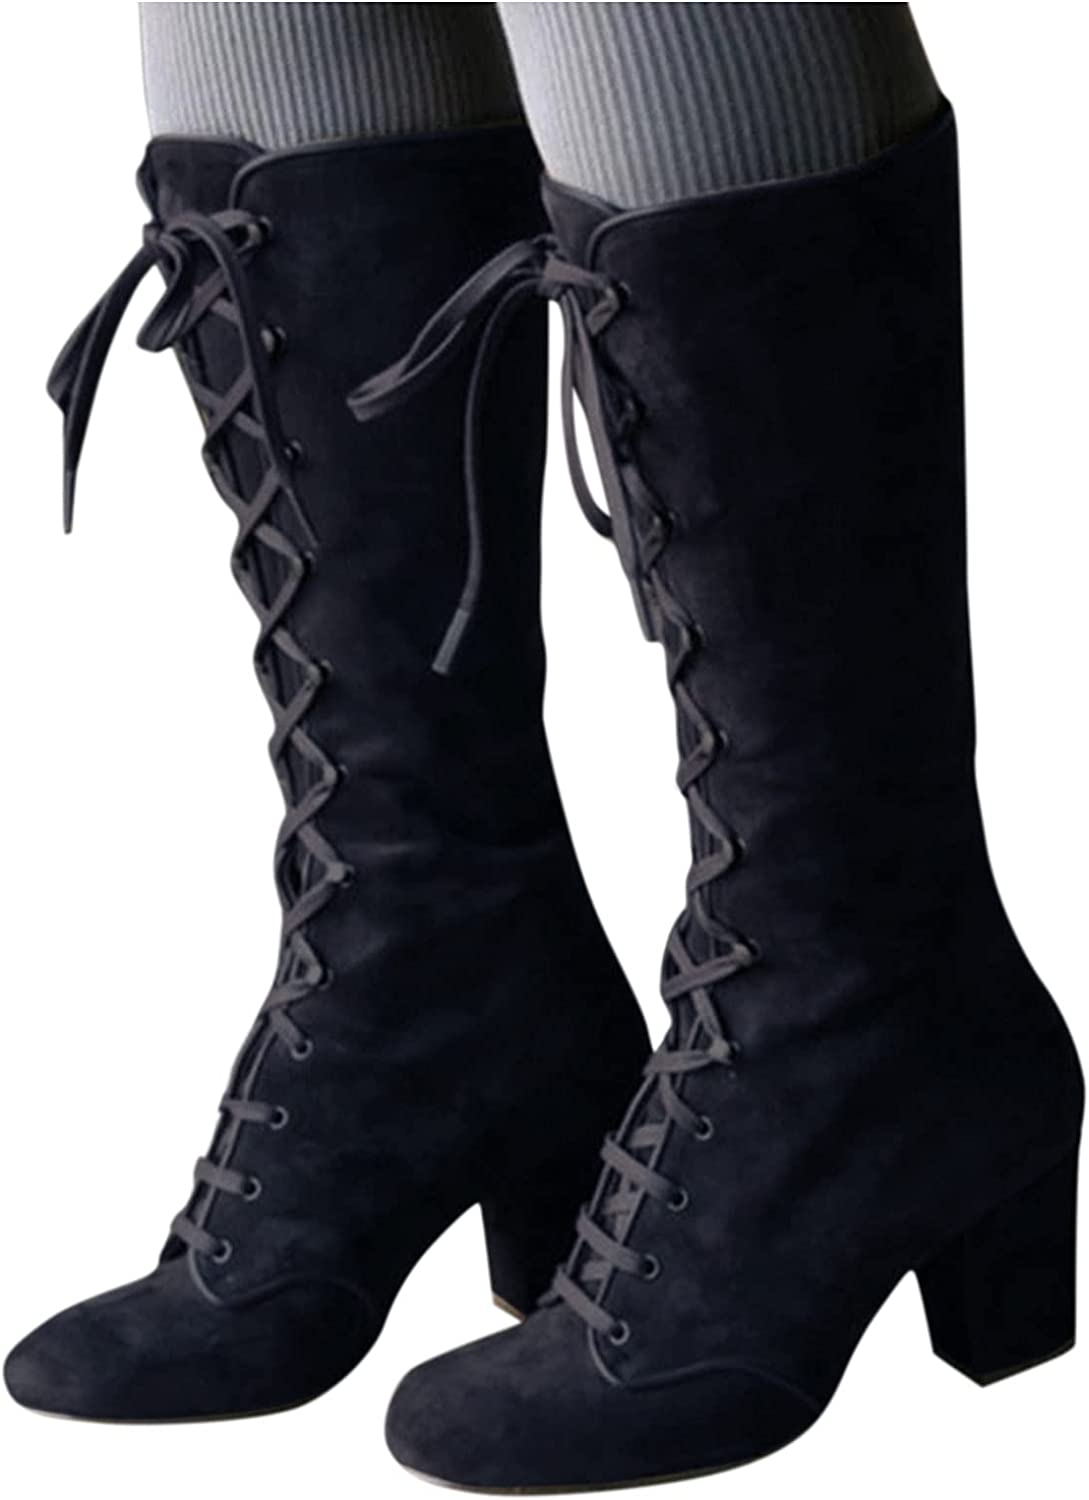 AODONG Cowboy Boots for Women,Low Heel Boots Mid Calf Booties Casual Lace Up Western Platform Boots